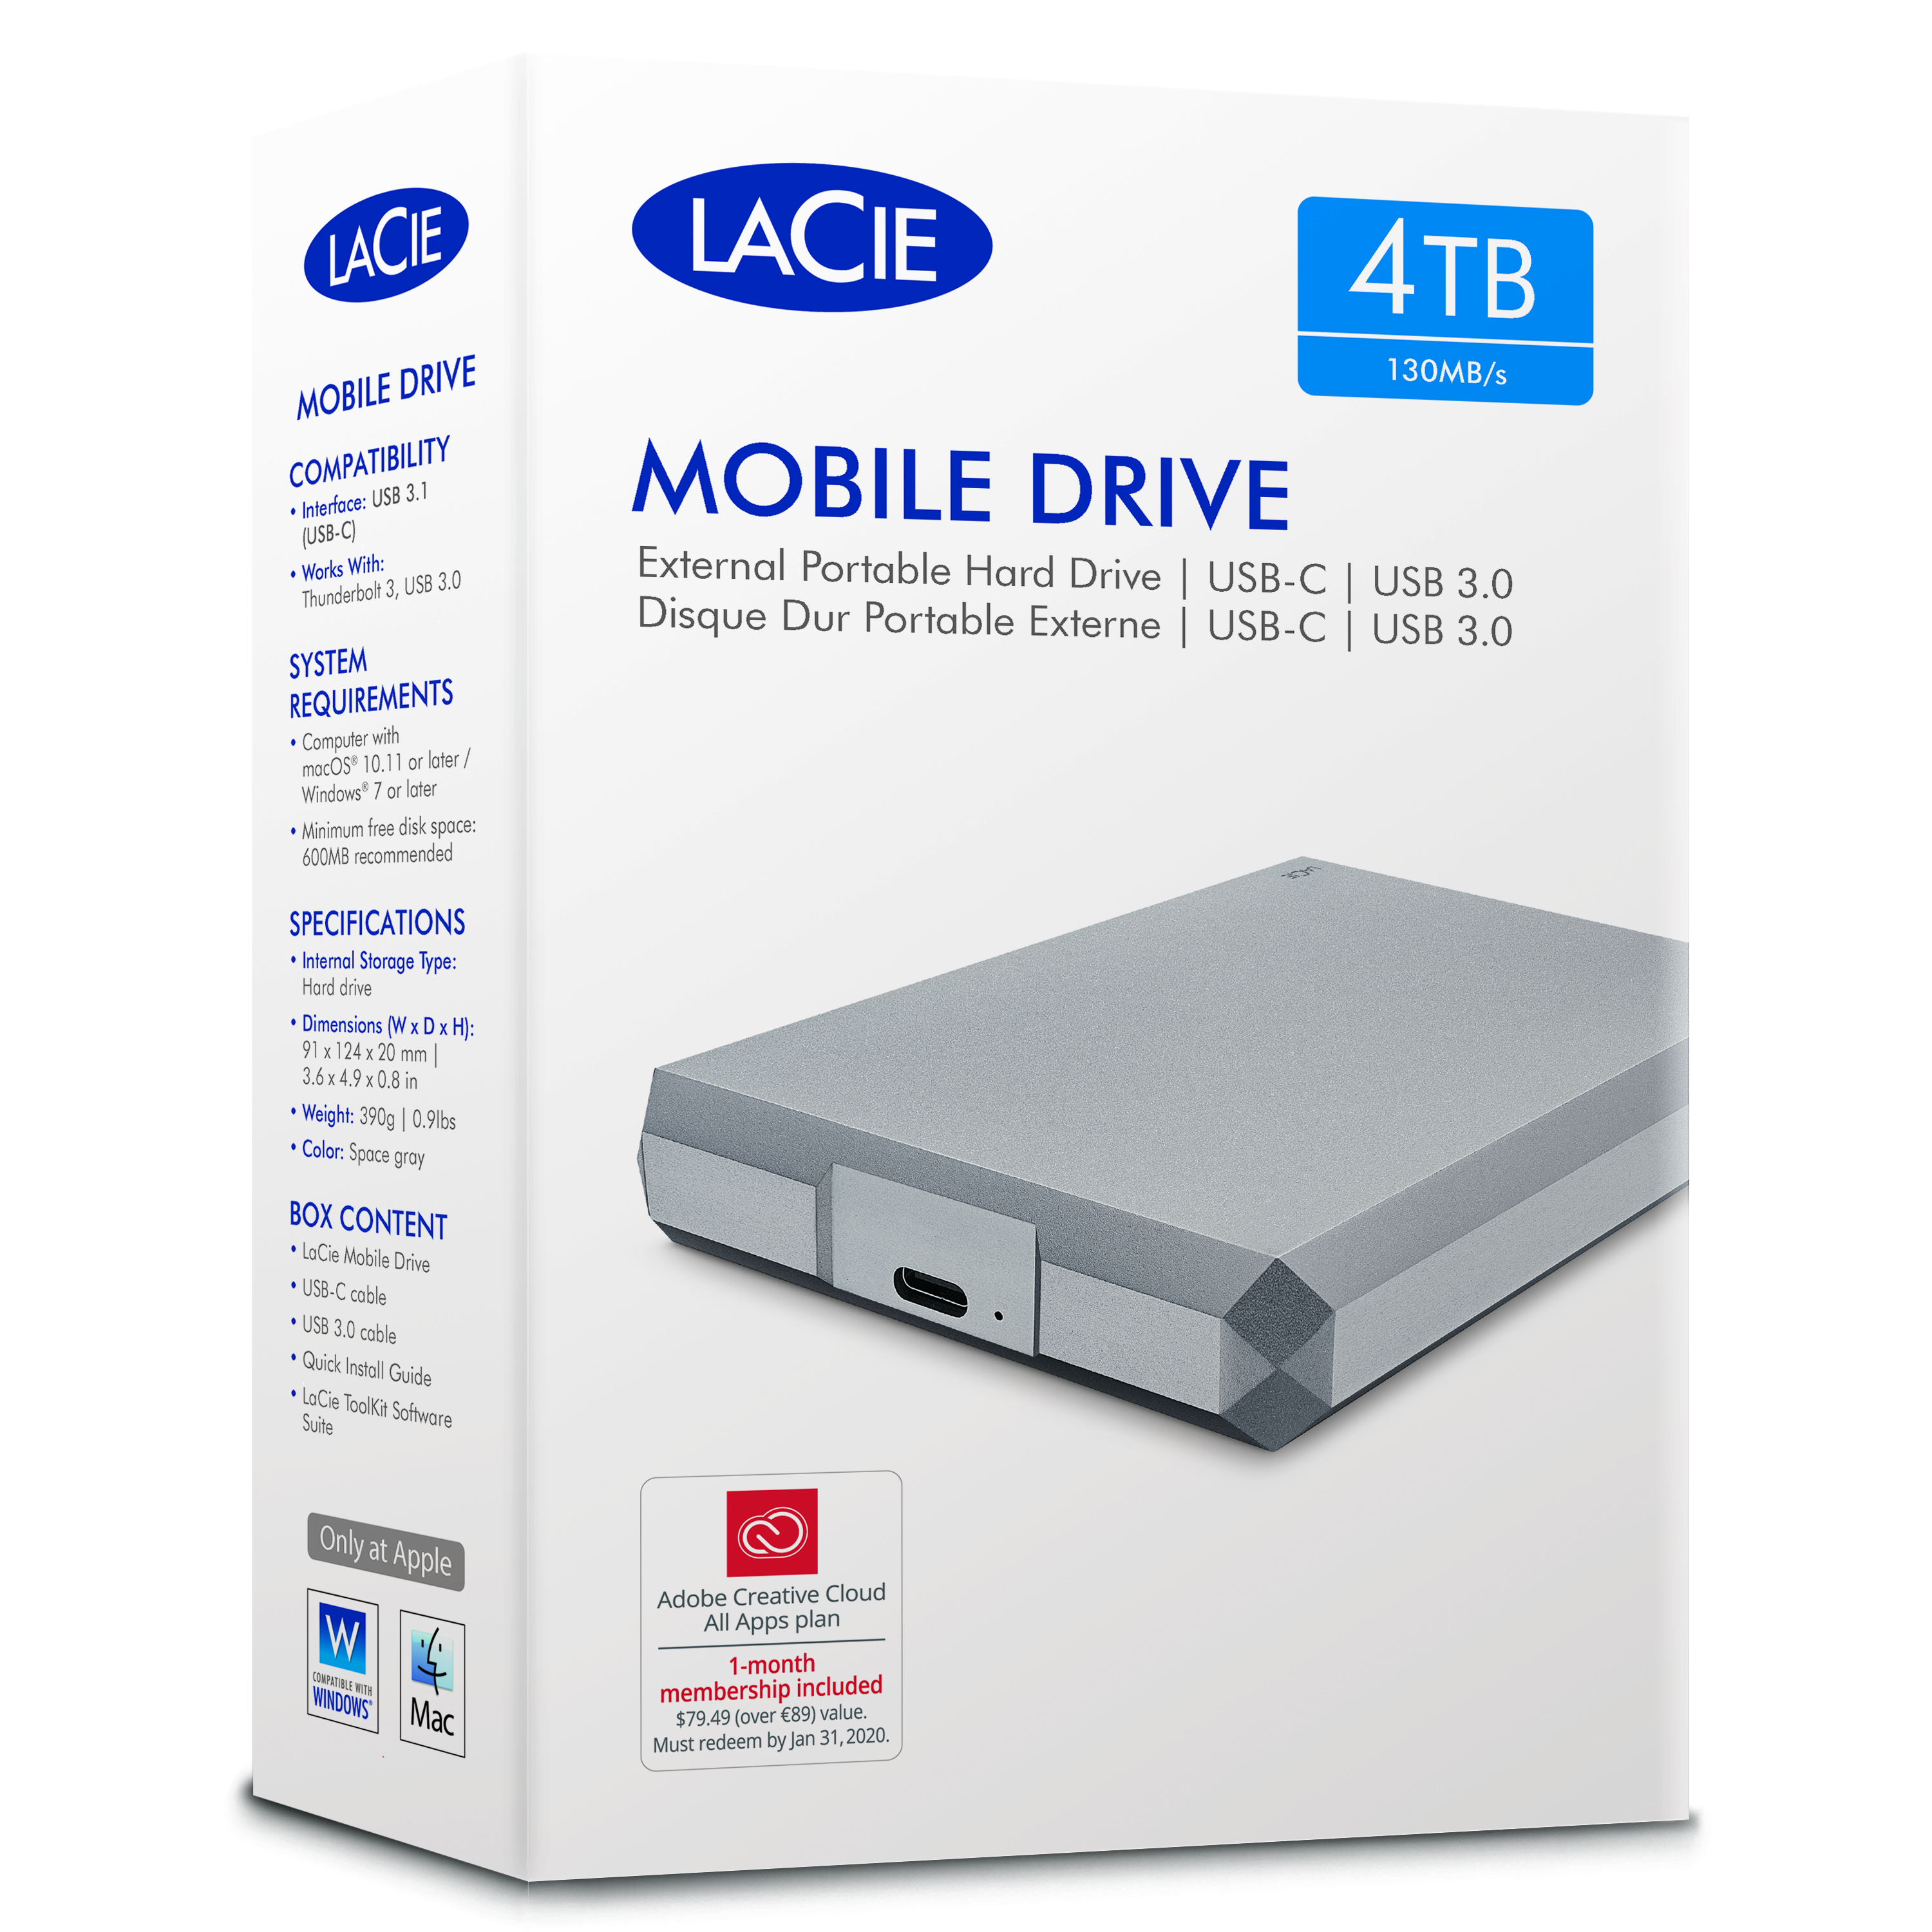 Lacie 4TB Mobile Drive | USB 3.0 Type-C Portable External Hard Drive | For PC & Mac | Storage Thumbnail 8